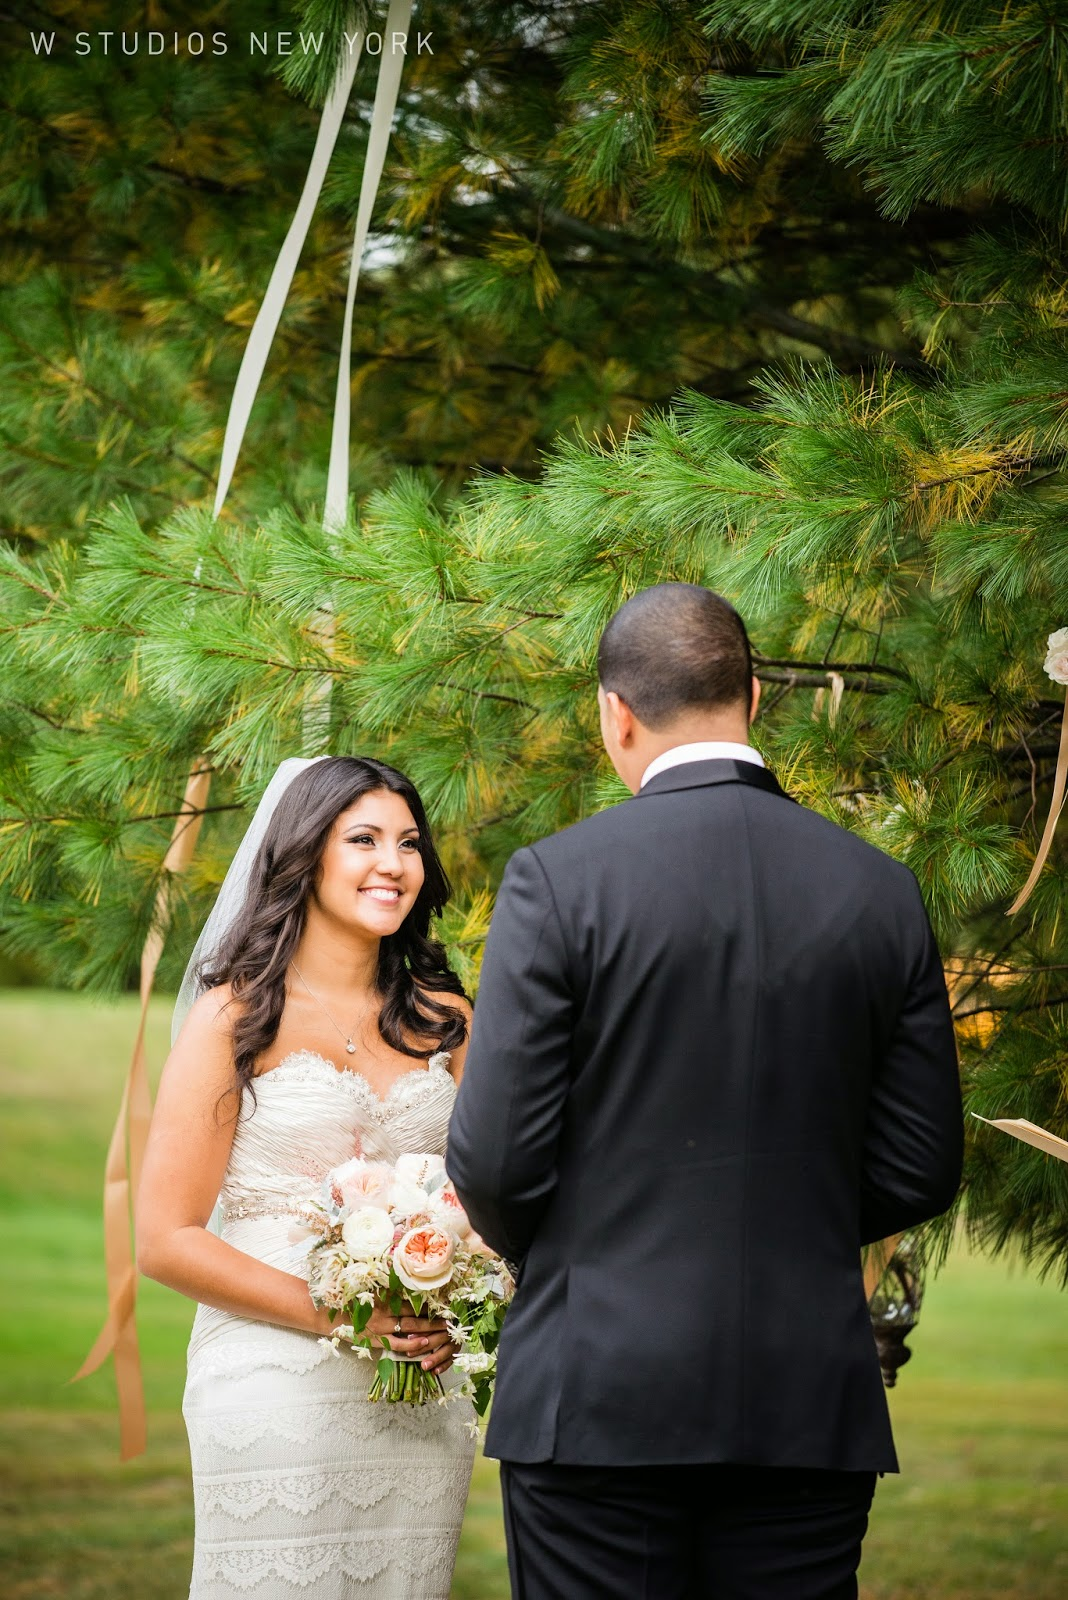 Highlands Club Wedding - Hudson Valley NY Weddings - Ceremony Flowers - Splendid Stems Floral Designs